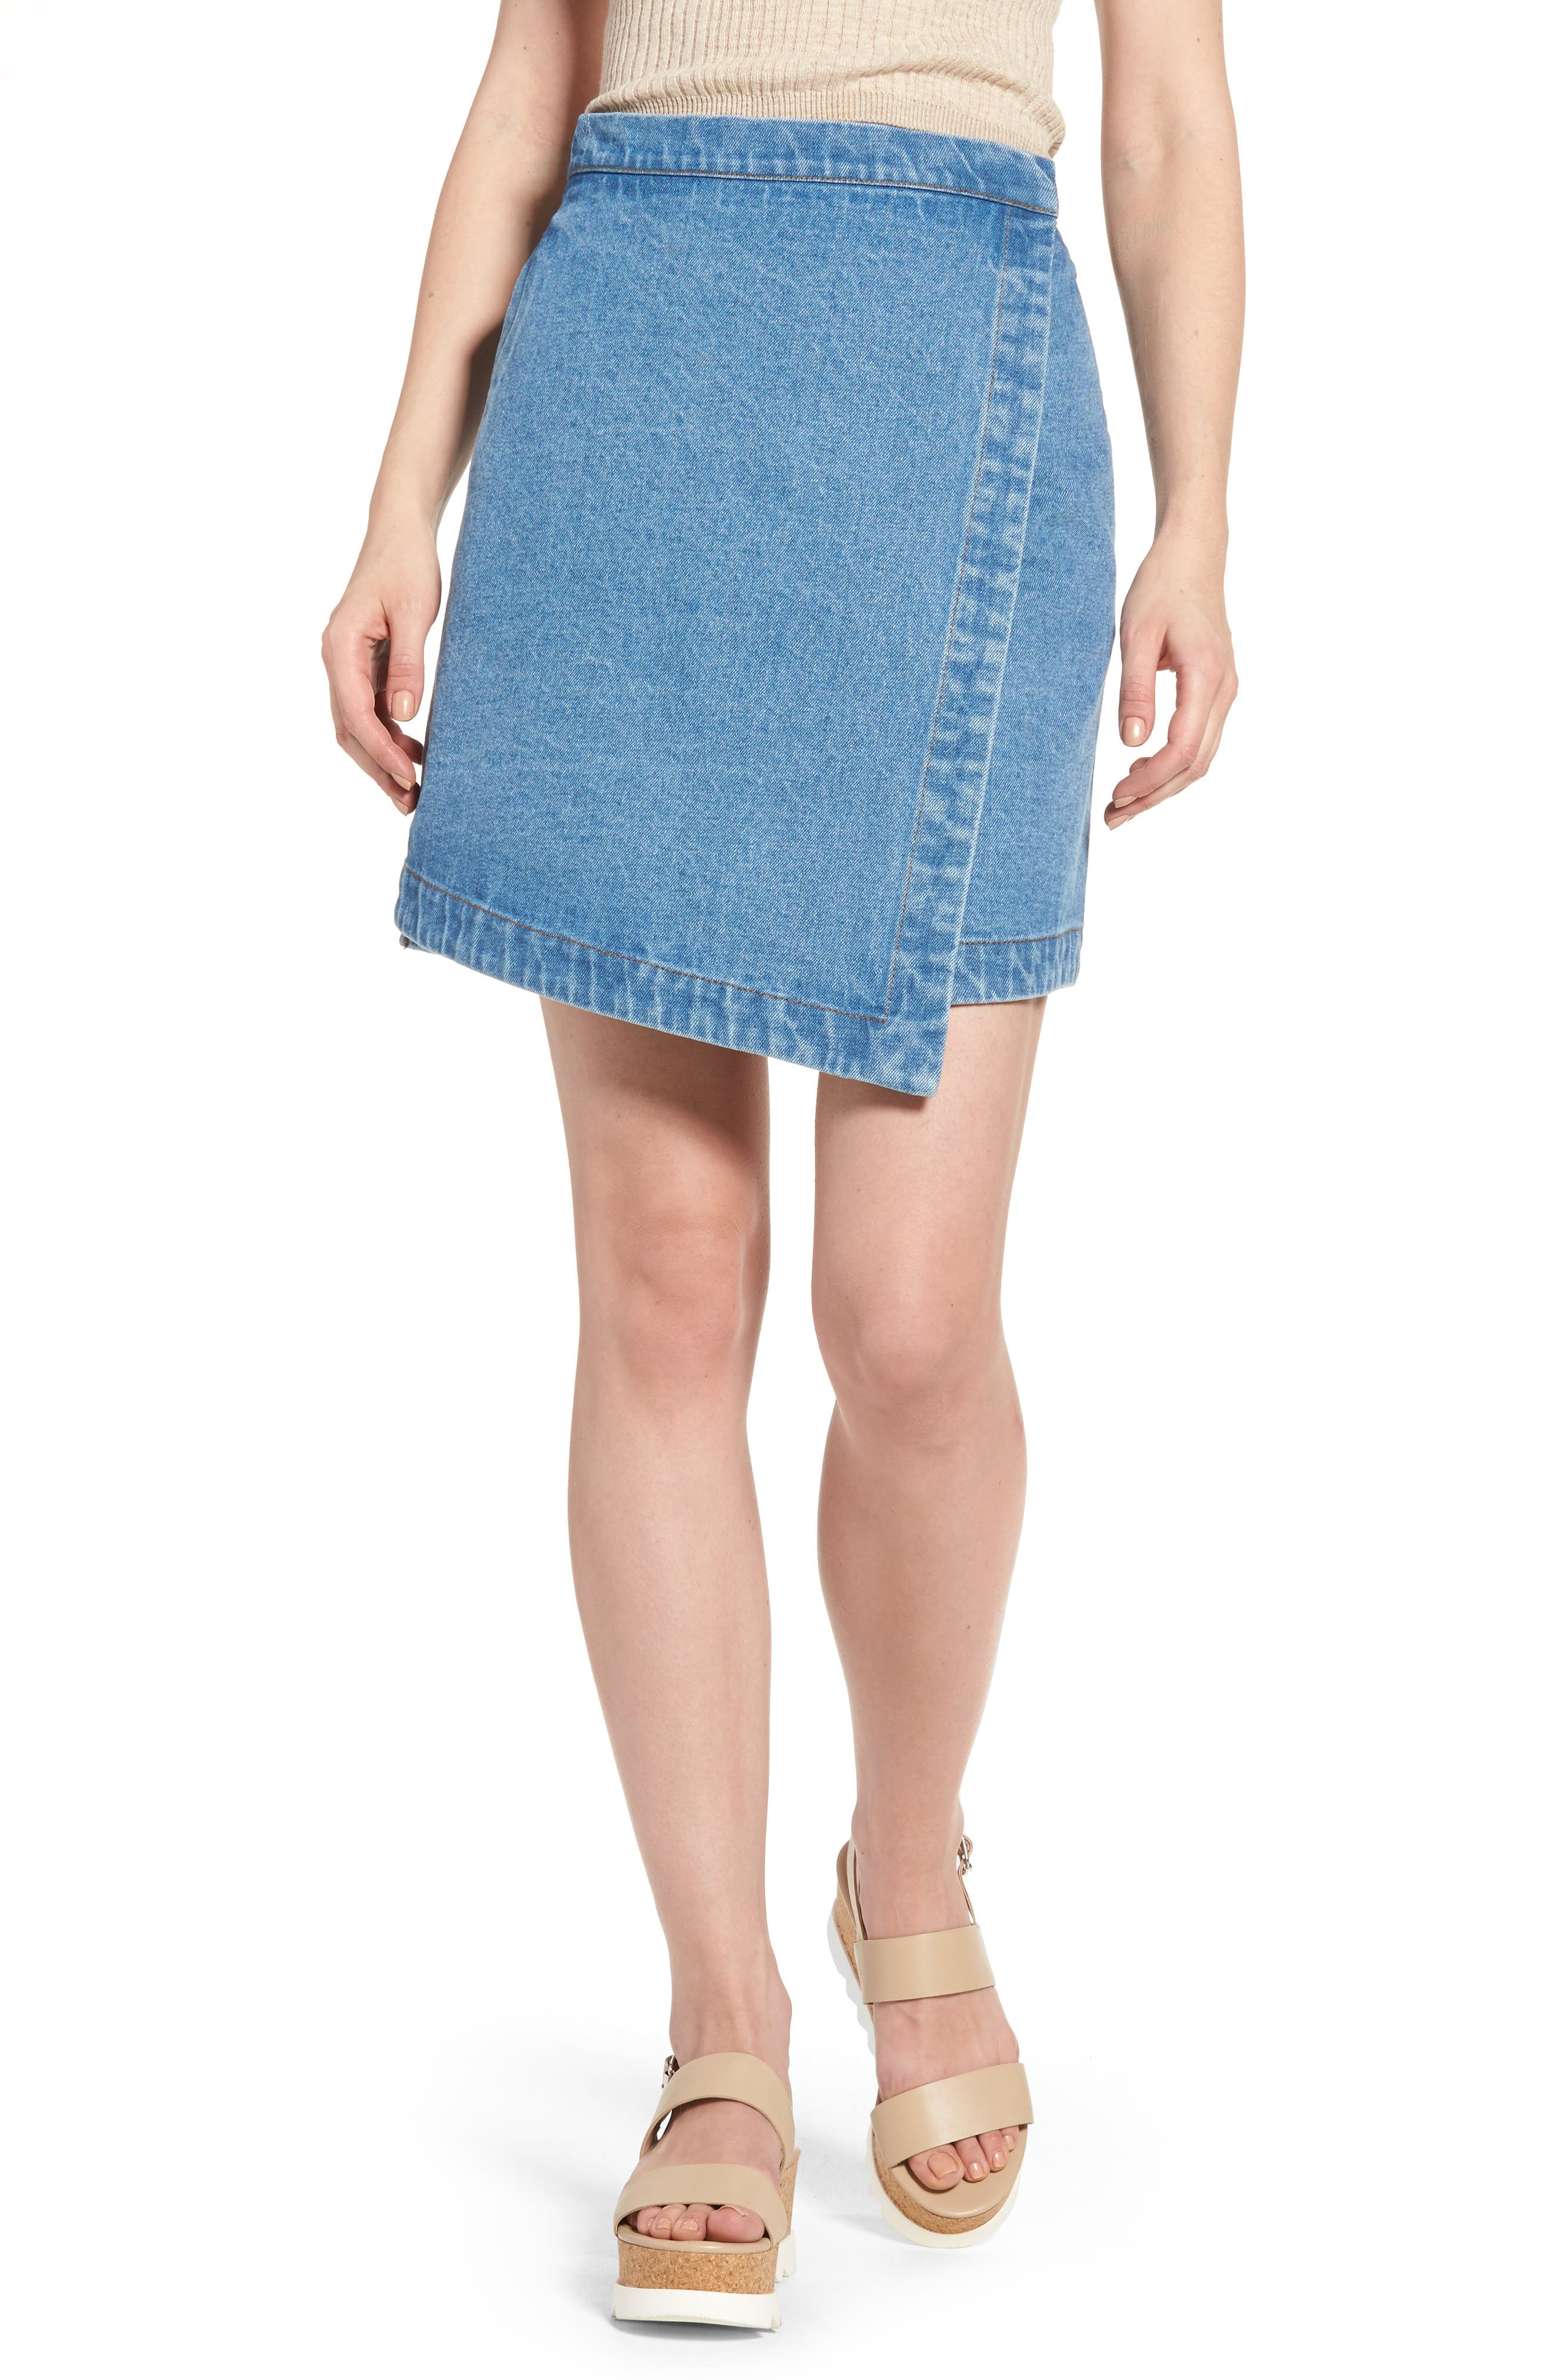 The Fifth Label Back Streets Asymmetrical Denim Skirt